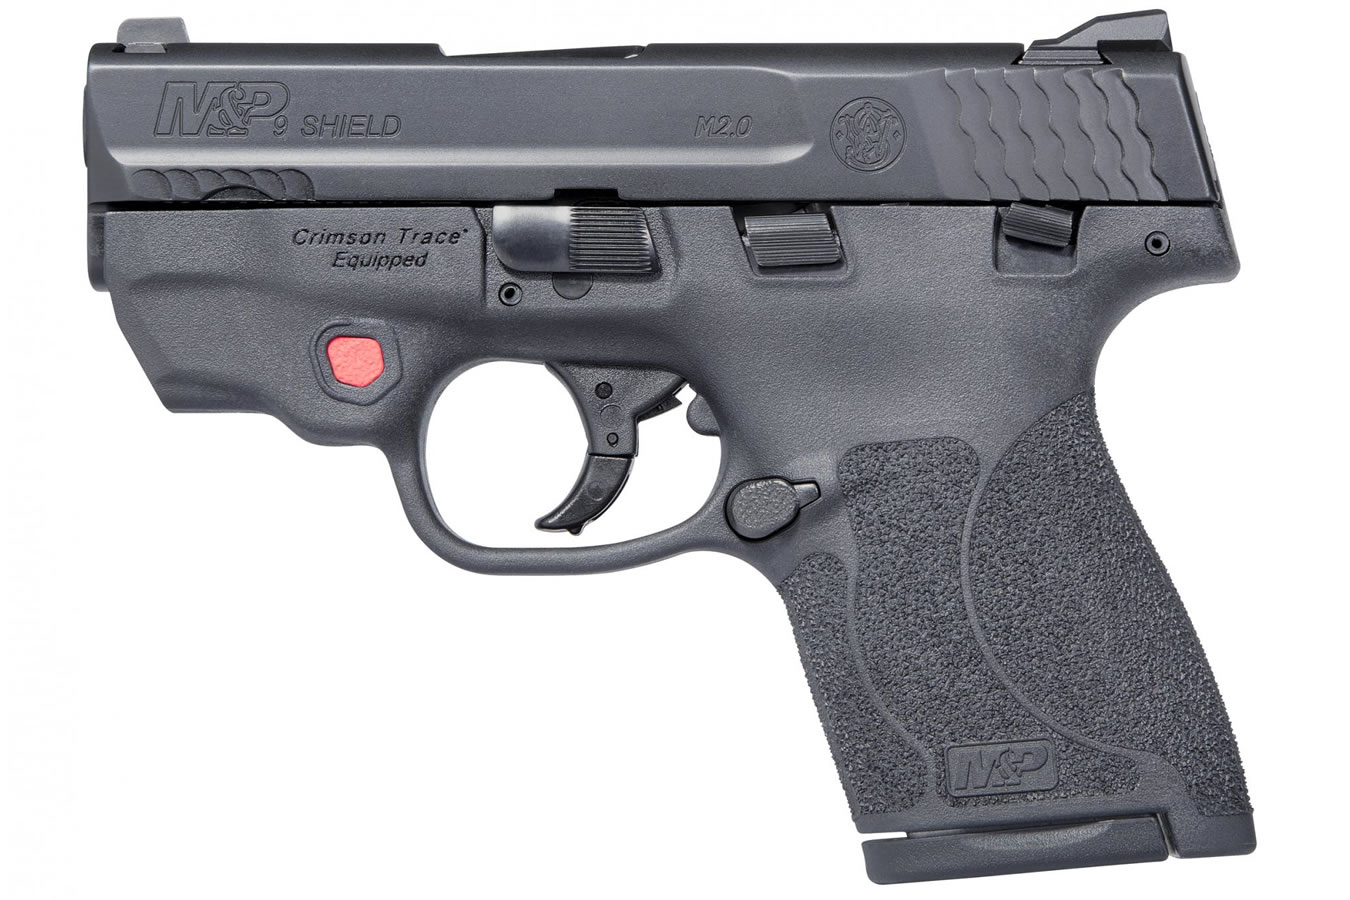 MP9 SHIELD M2.0 9MM W/TS CT LASER